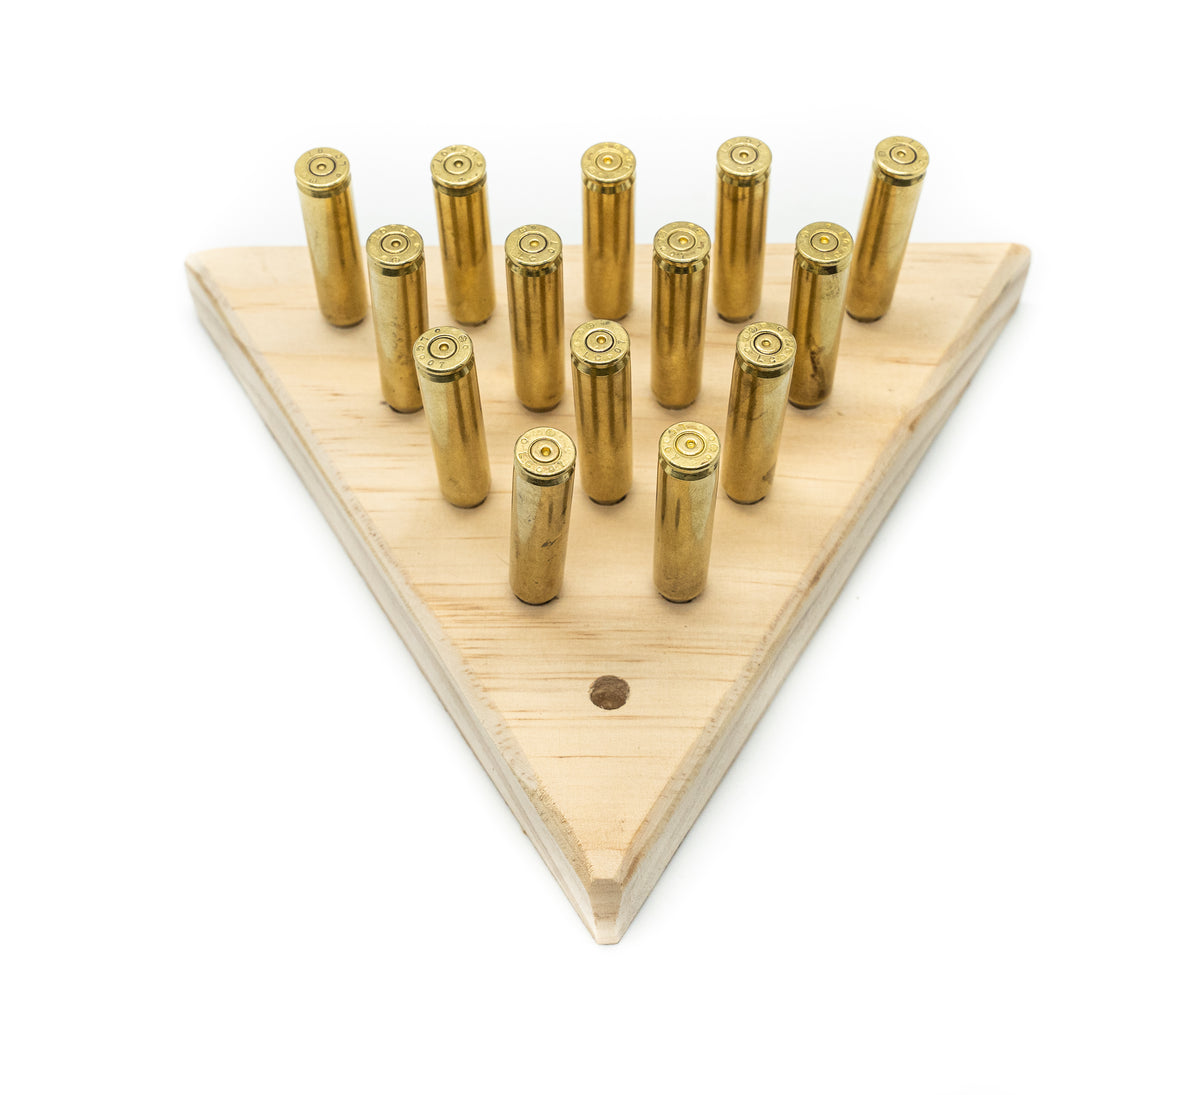 Tricky Triangle - Peg Solitaire - Bullet Peg Game Puzzle - Cracker Barrel Board Game - Wood Jumping Peg Game - Gifts For Kids